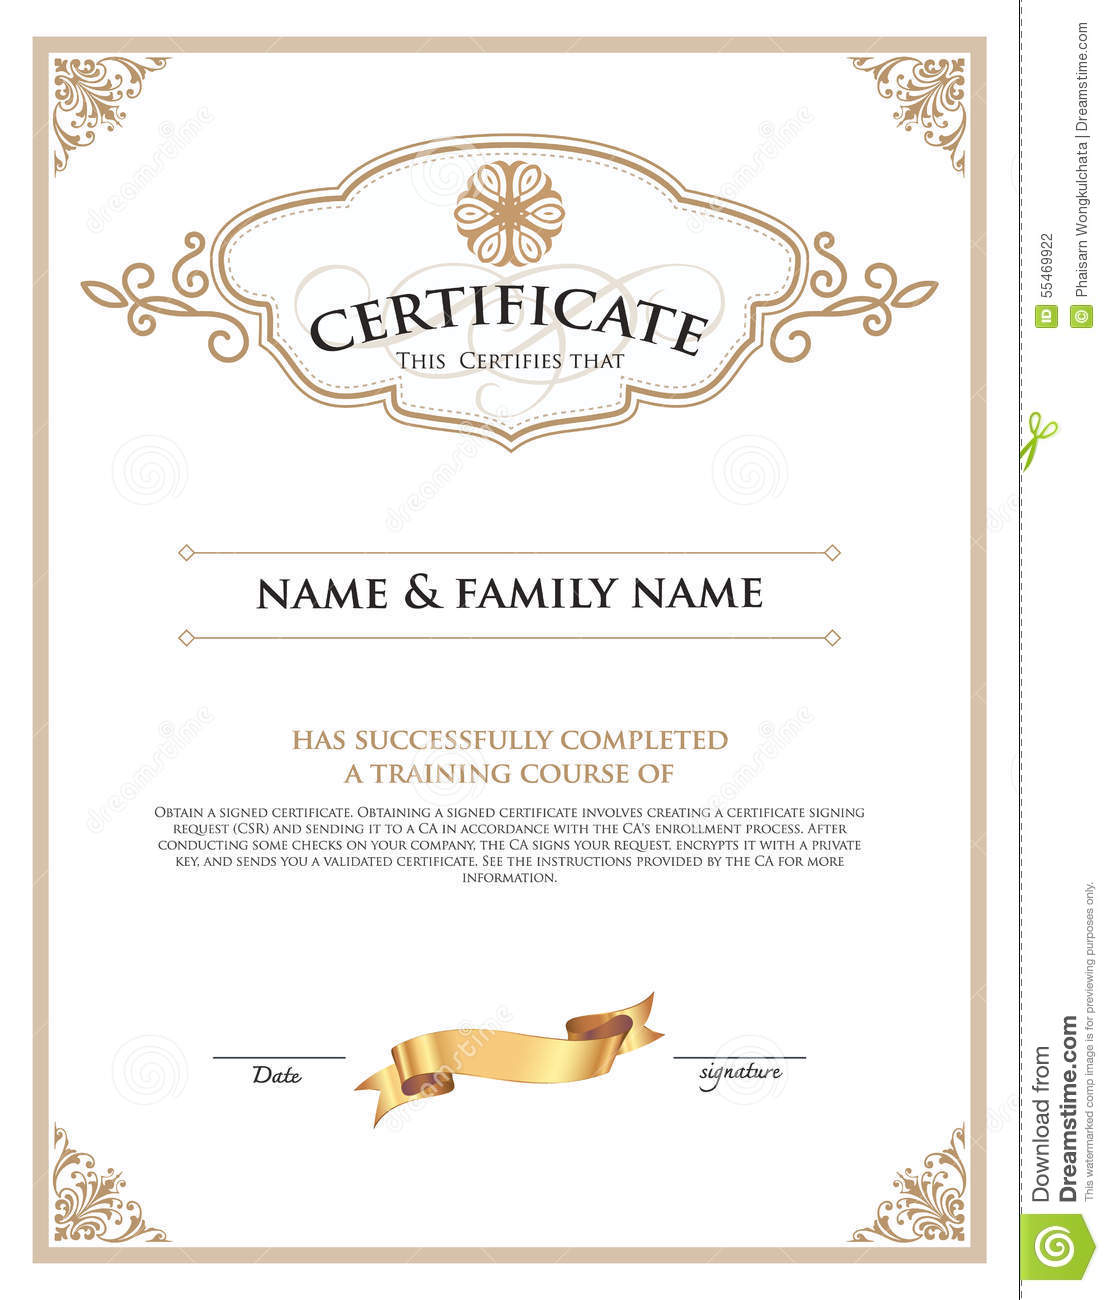 Certificate Design Template Stock Vector Image 55469922